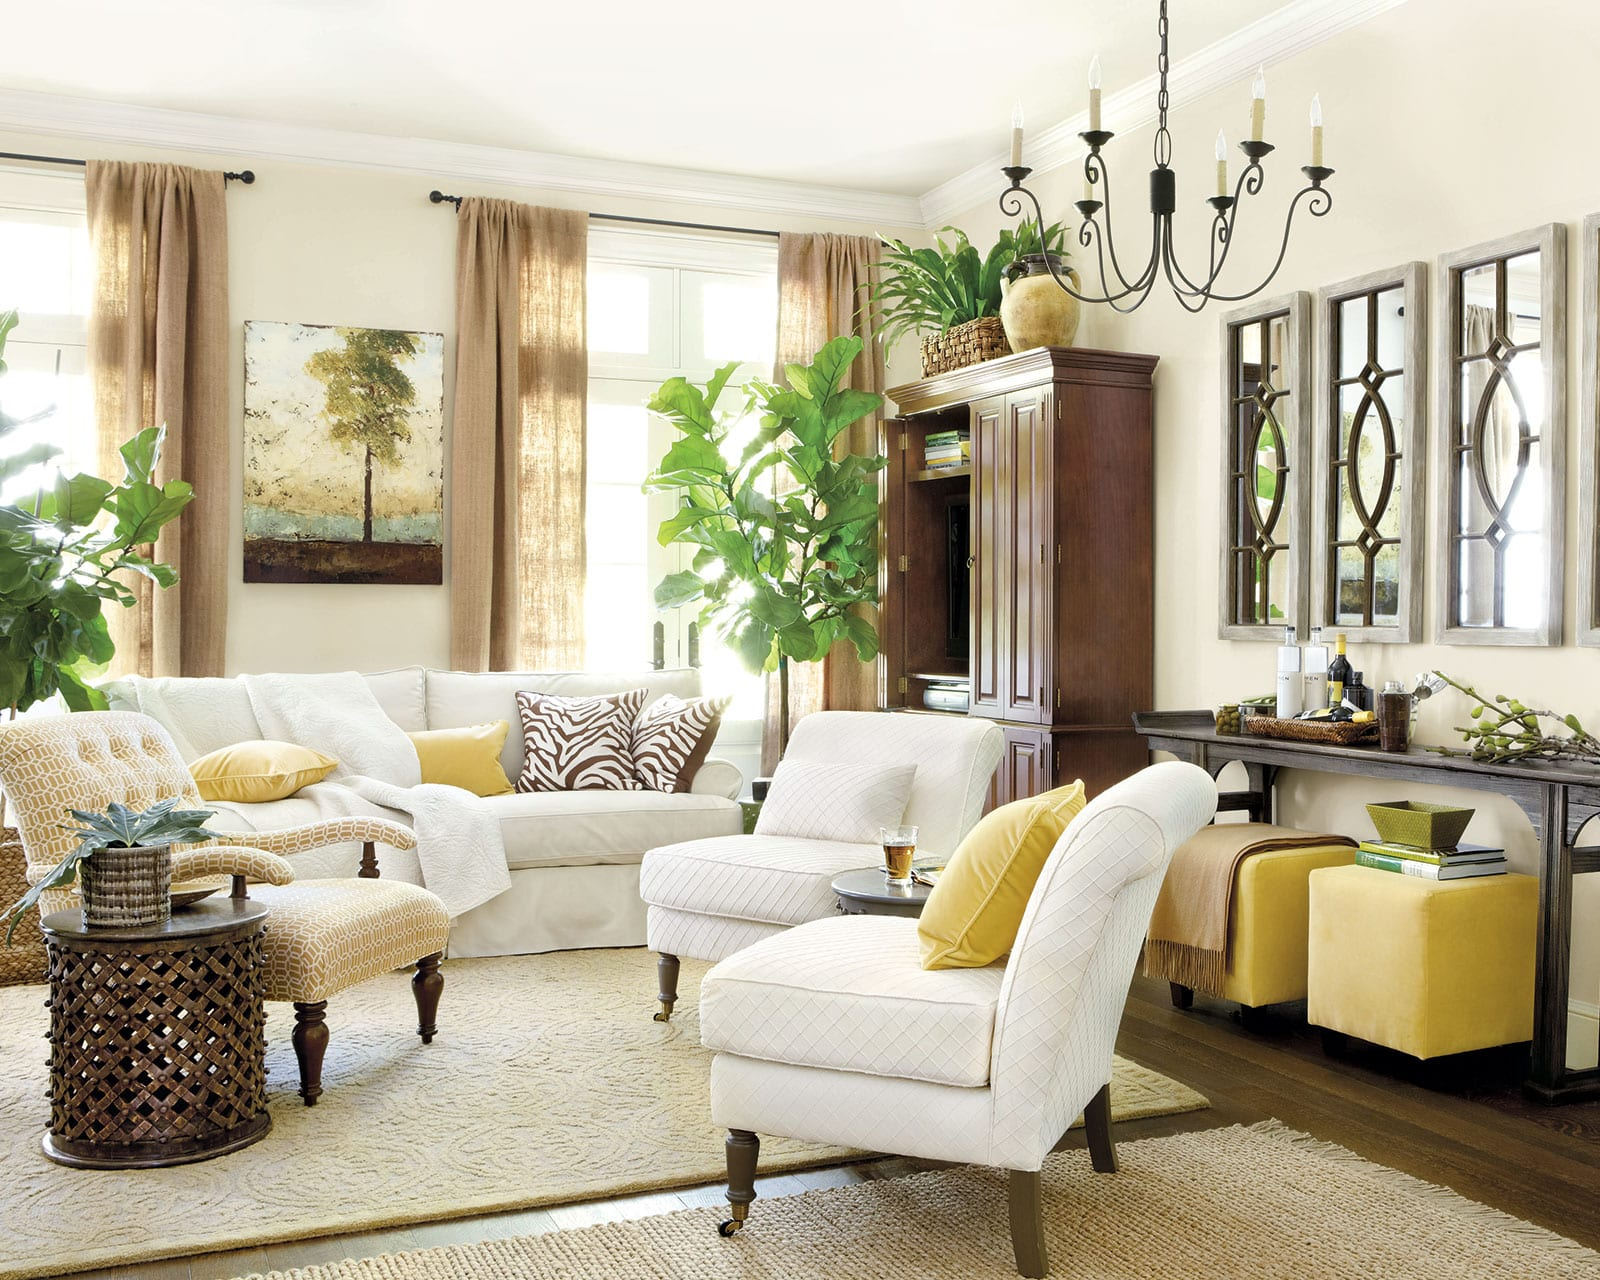 how to make mismatched living room furniture work grey wood tile floor 6 tips for mixing tones in a mix finishes